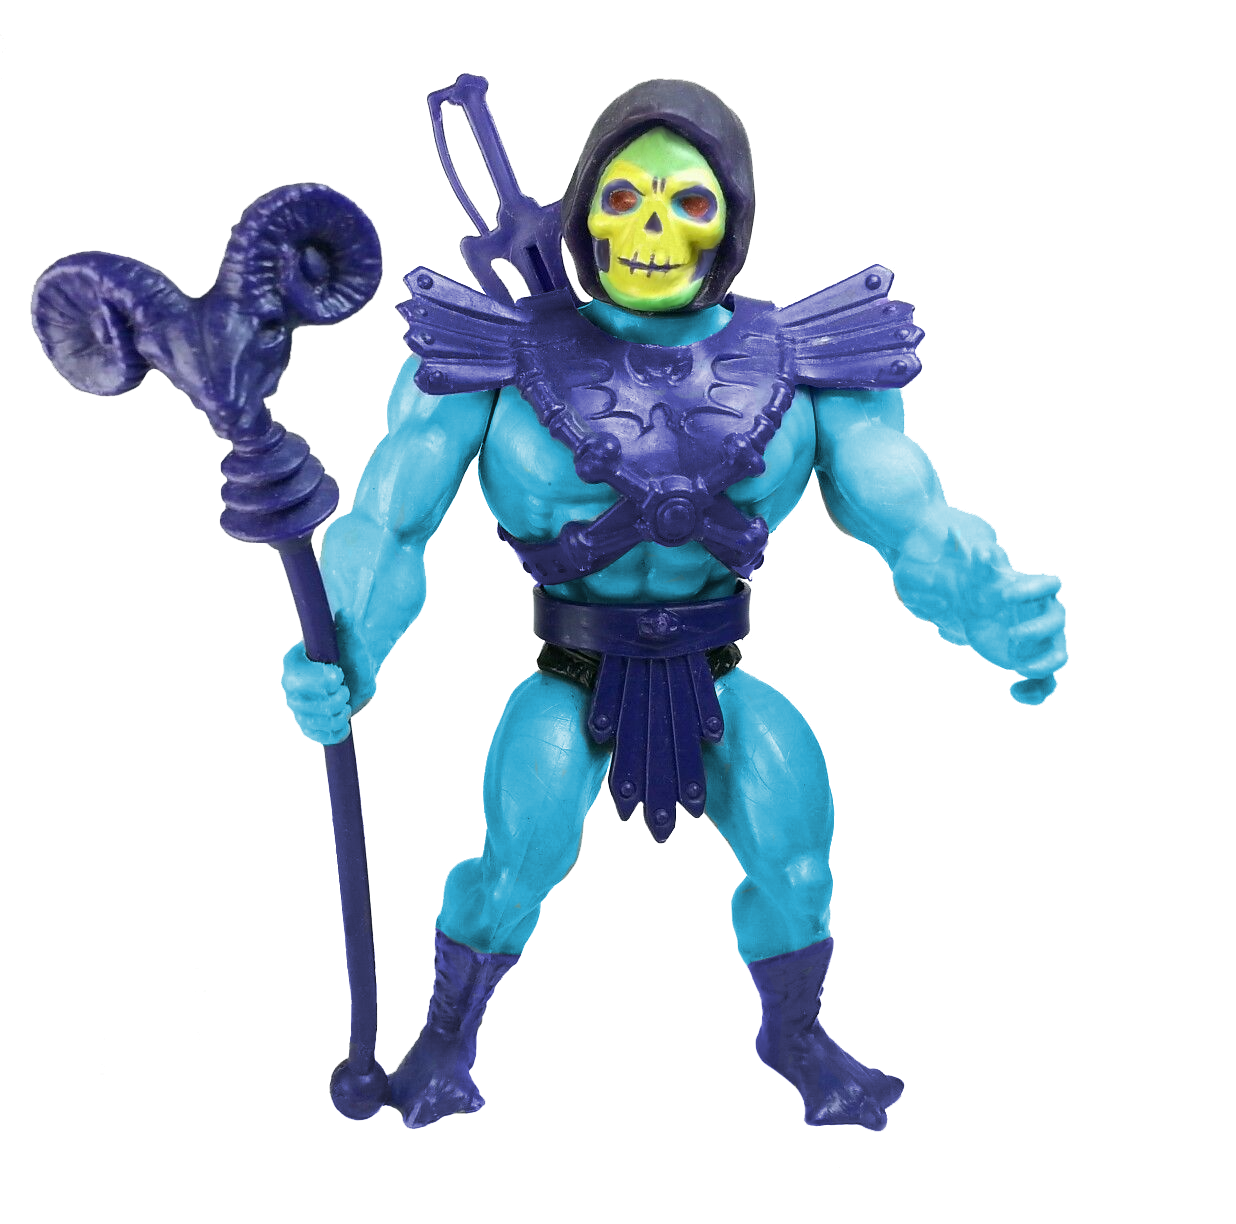 Skeletor figure